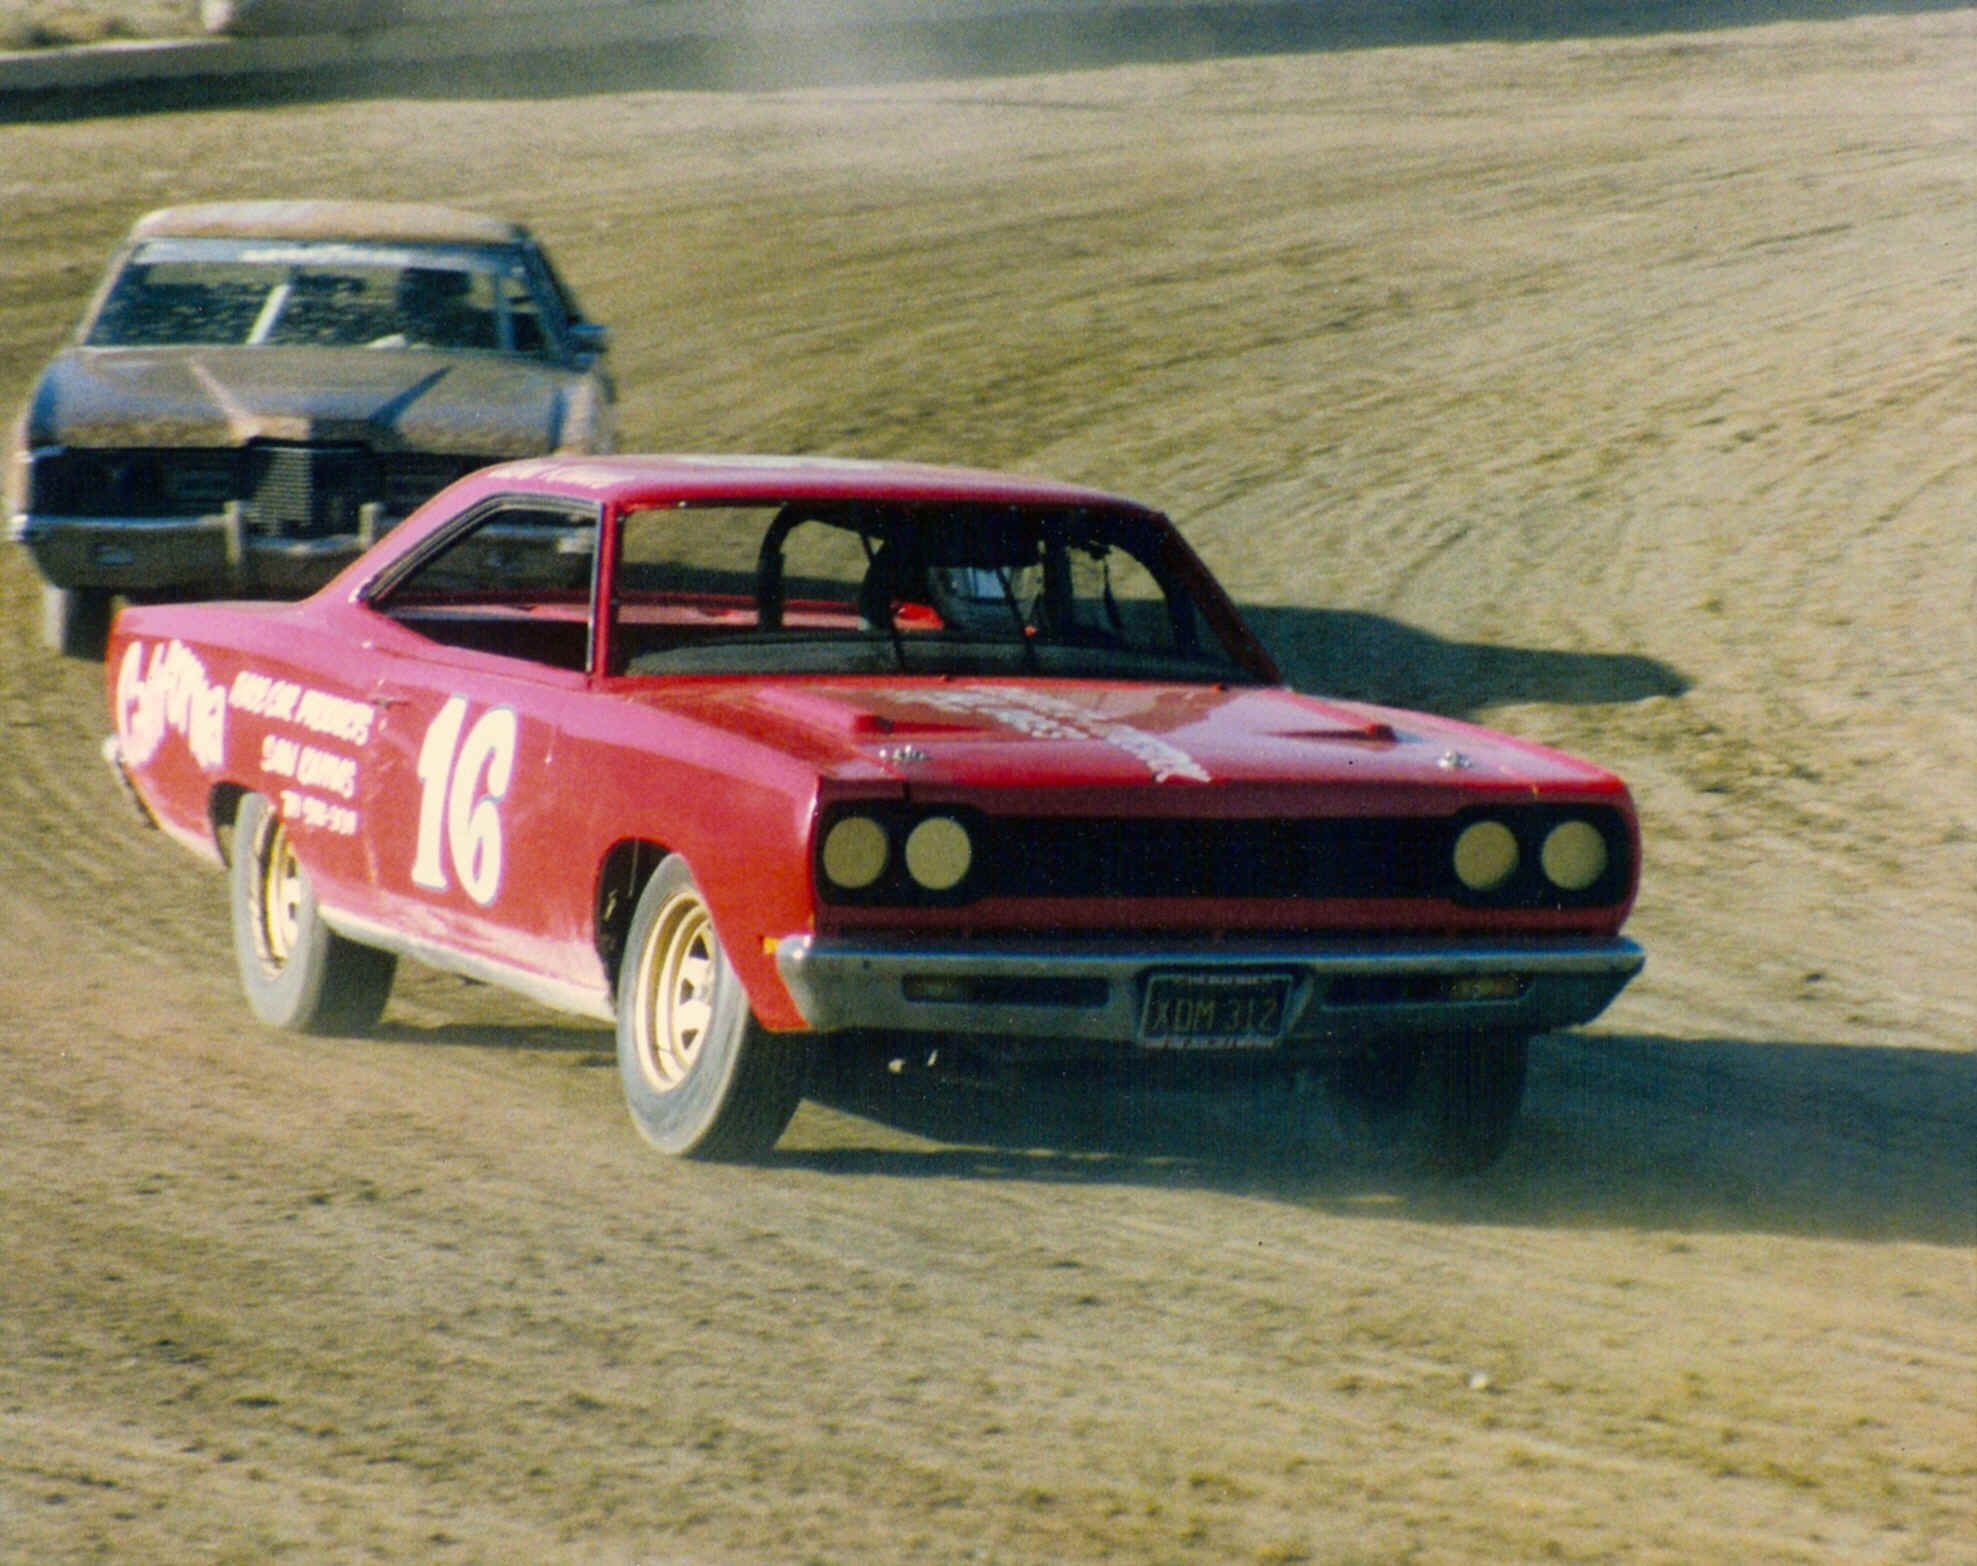 Driven stock car racing (and the cars literally look like this one ...